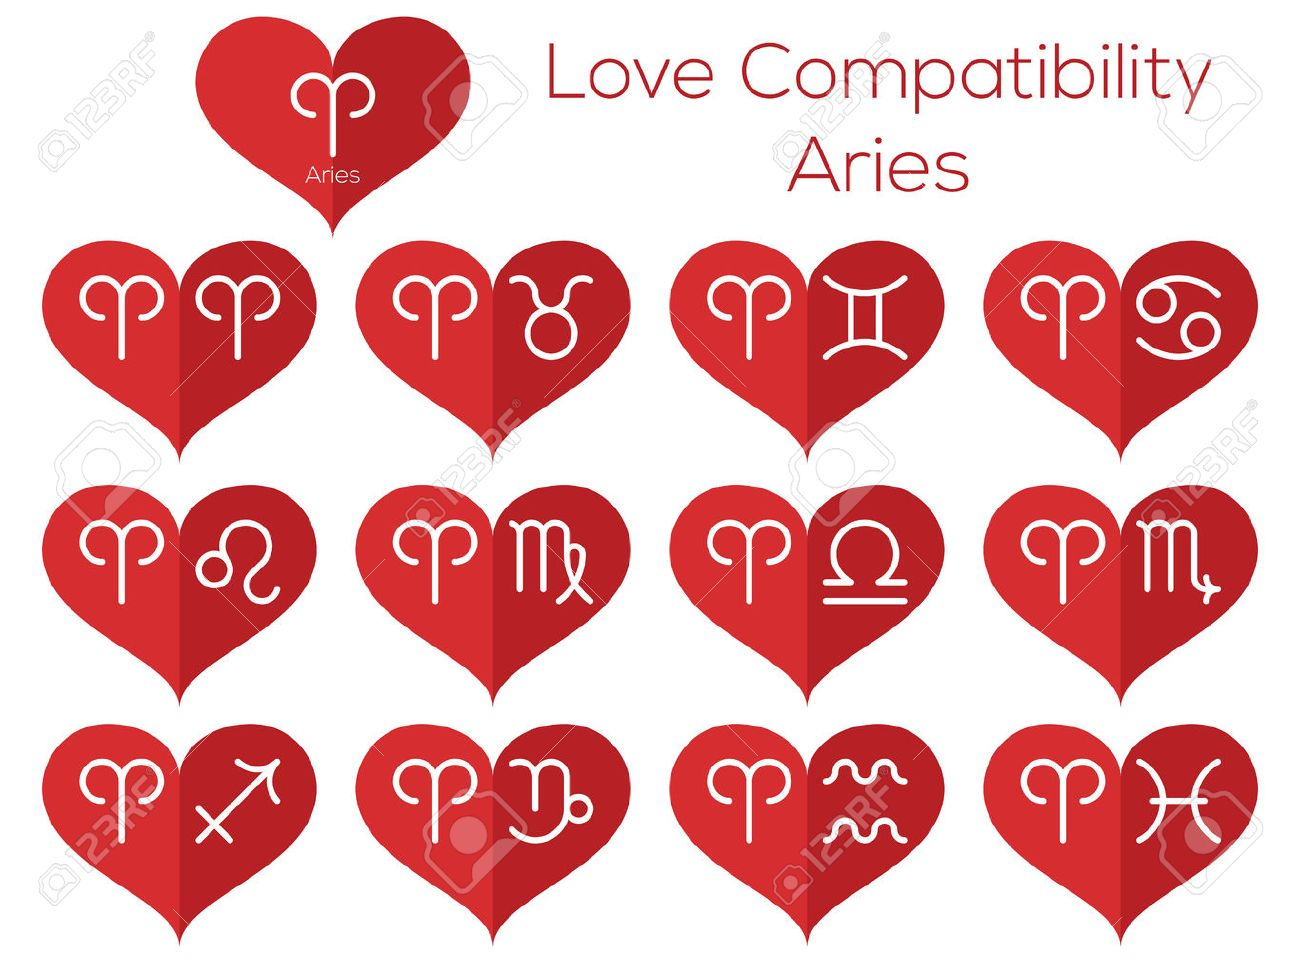 Love compatibility aries astrological signs of the zodiac love compatibility aries astrological signs of the zodiac vector set of flat thin nvjuhfo Choice Image